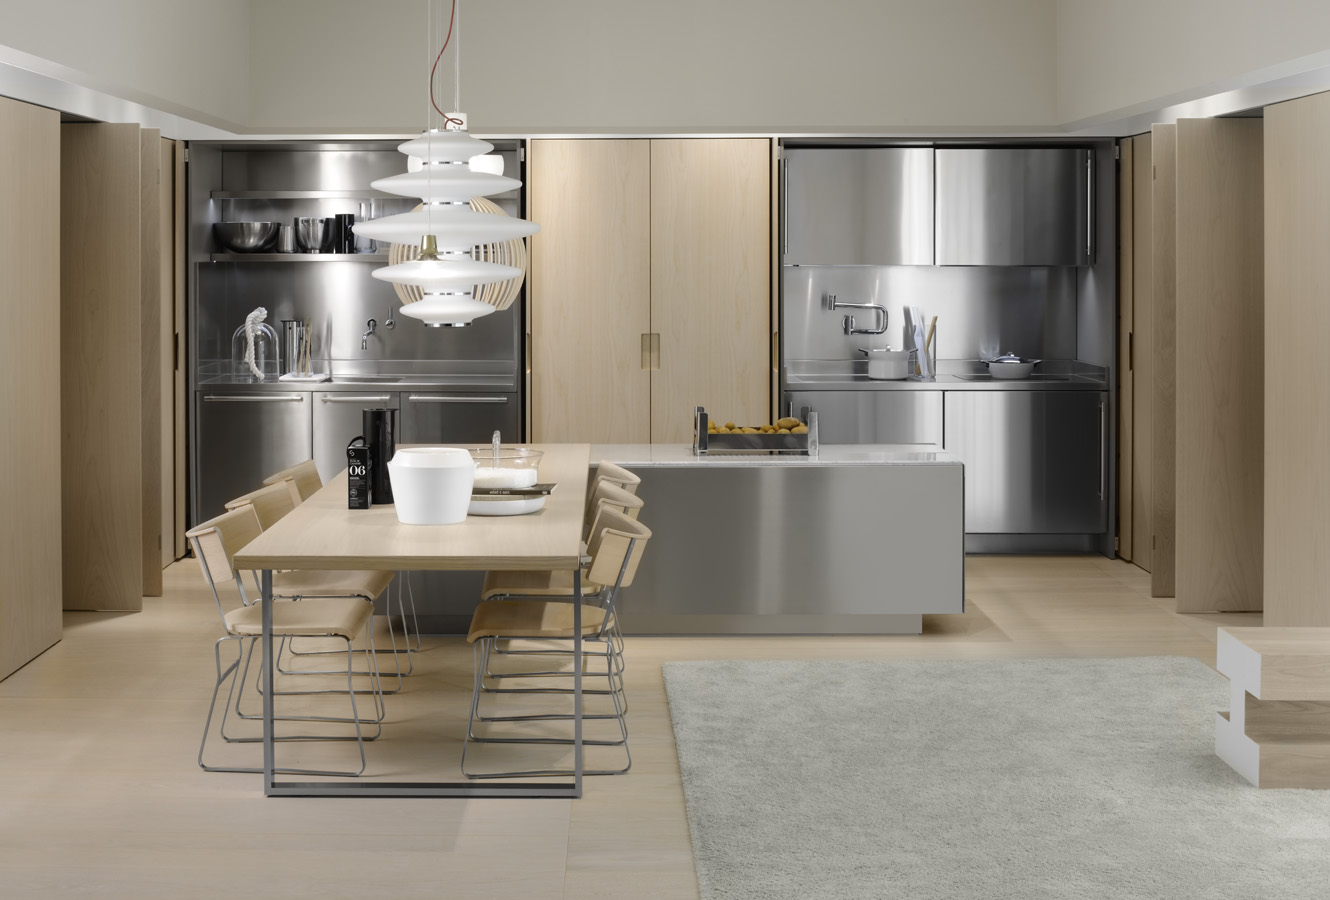 Modern italian kitchen design from arclinea for Stainless steel kitchen designs